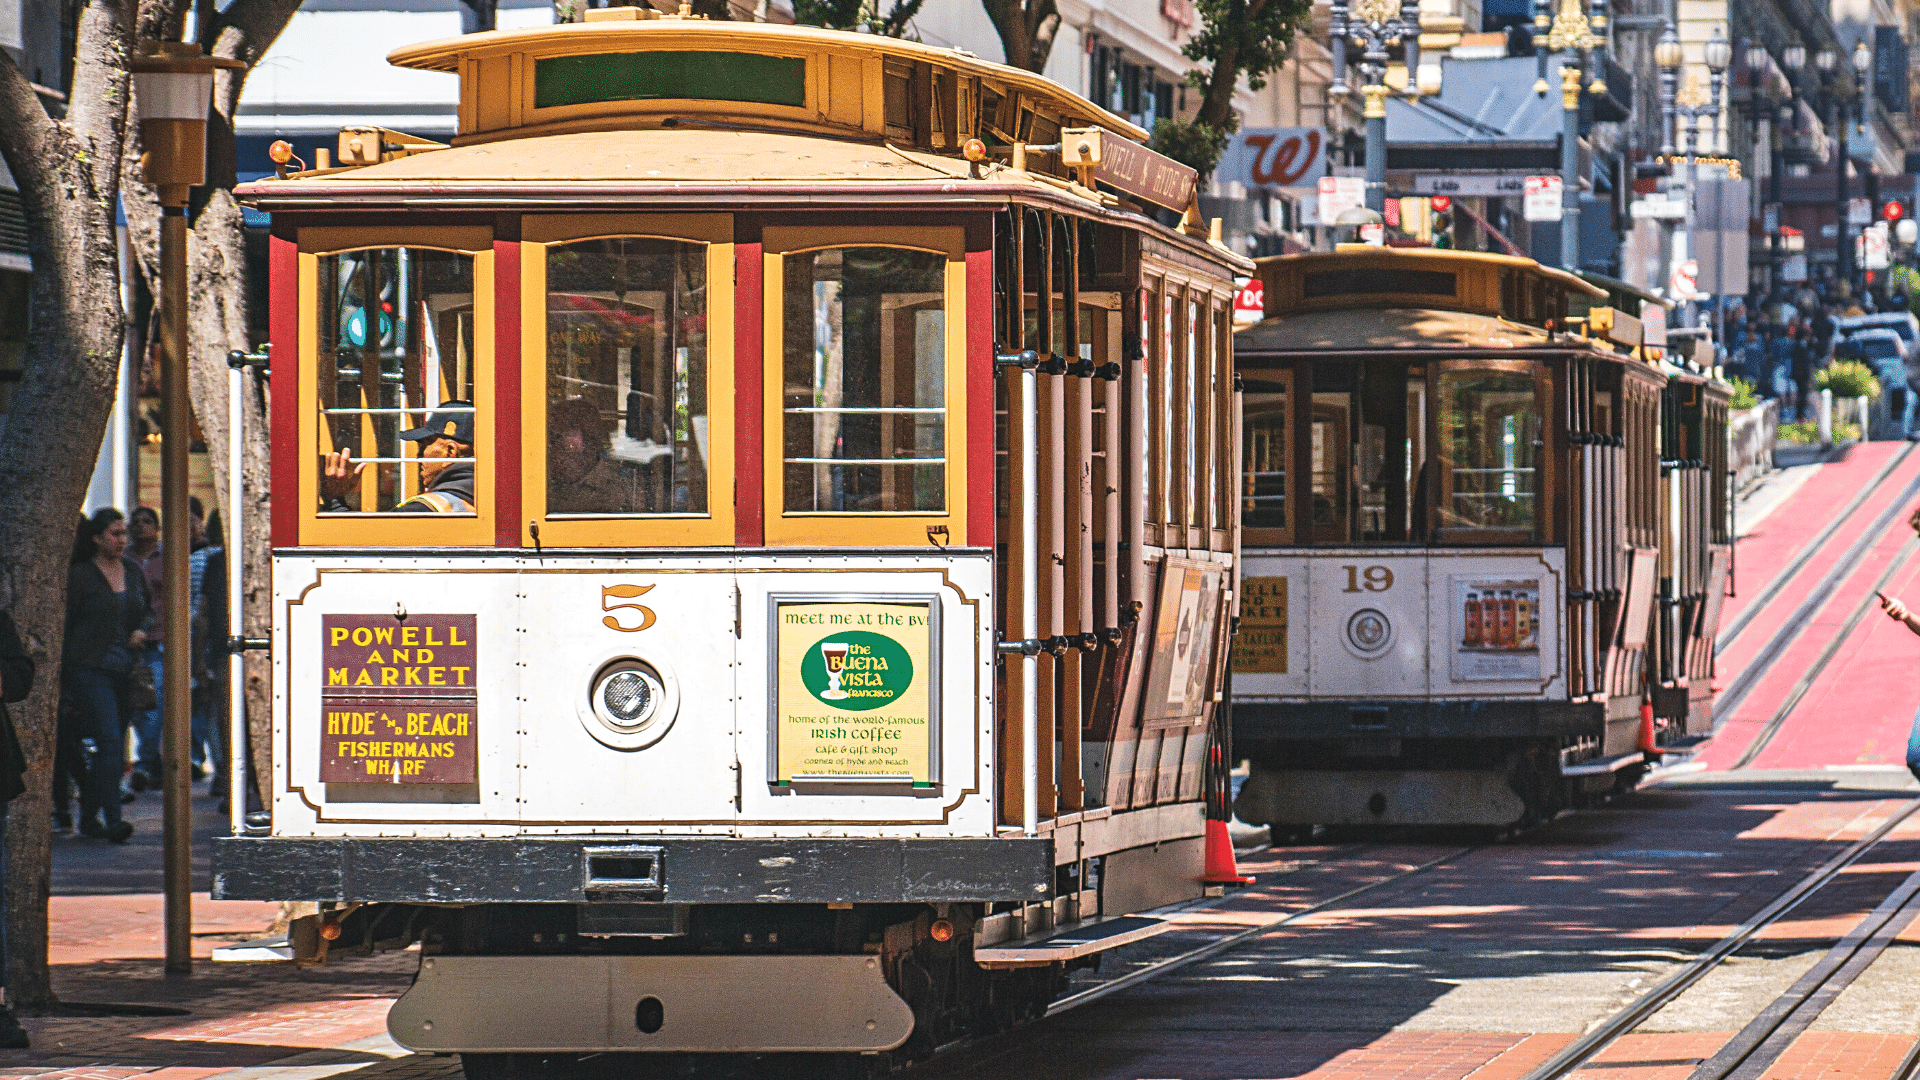 cable_car_4_reduced.png